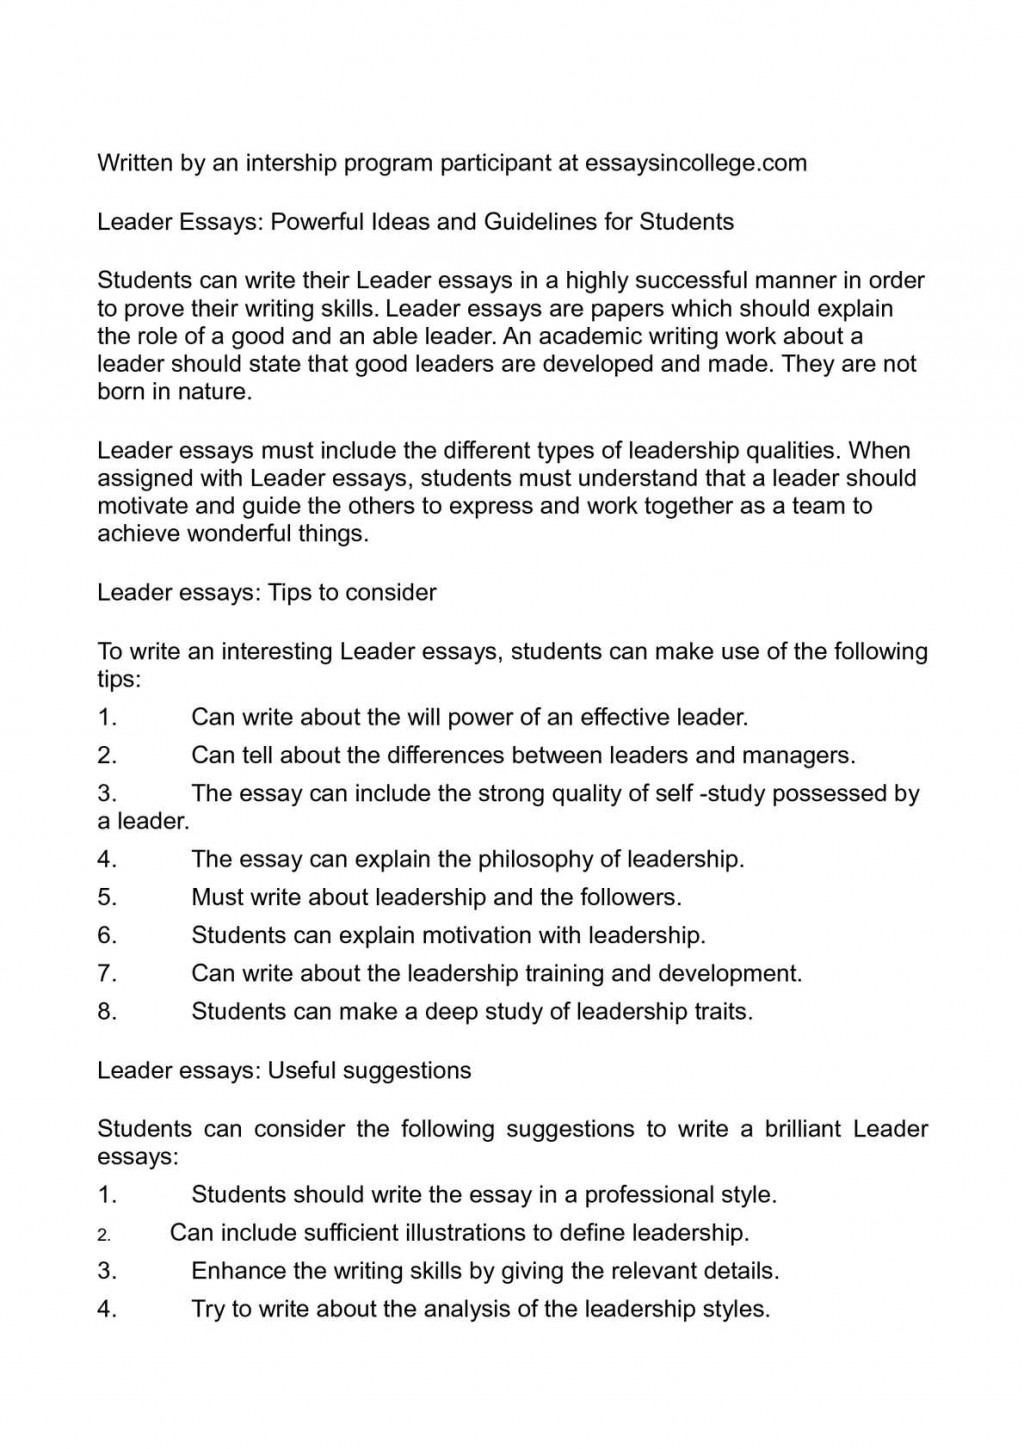 006 Leader Essays Powerful Ideas And Guidelines For Students Leadership Essay Writing Topi Topics Qualities Striking Mba Samples Pdf Large